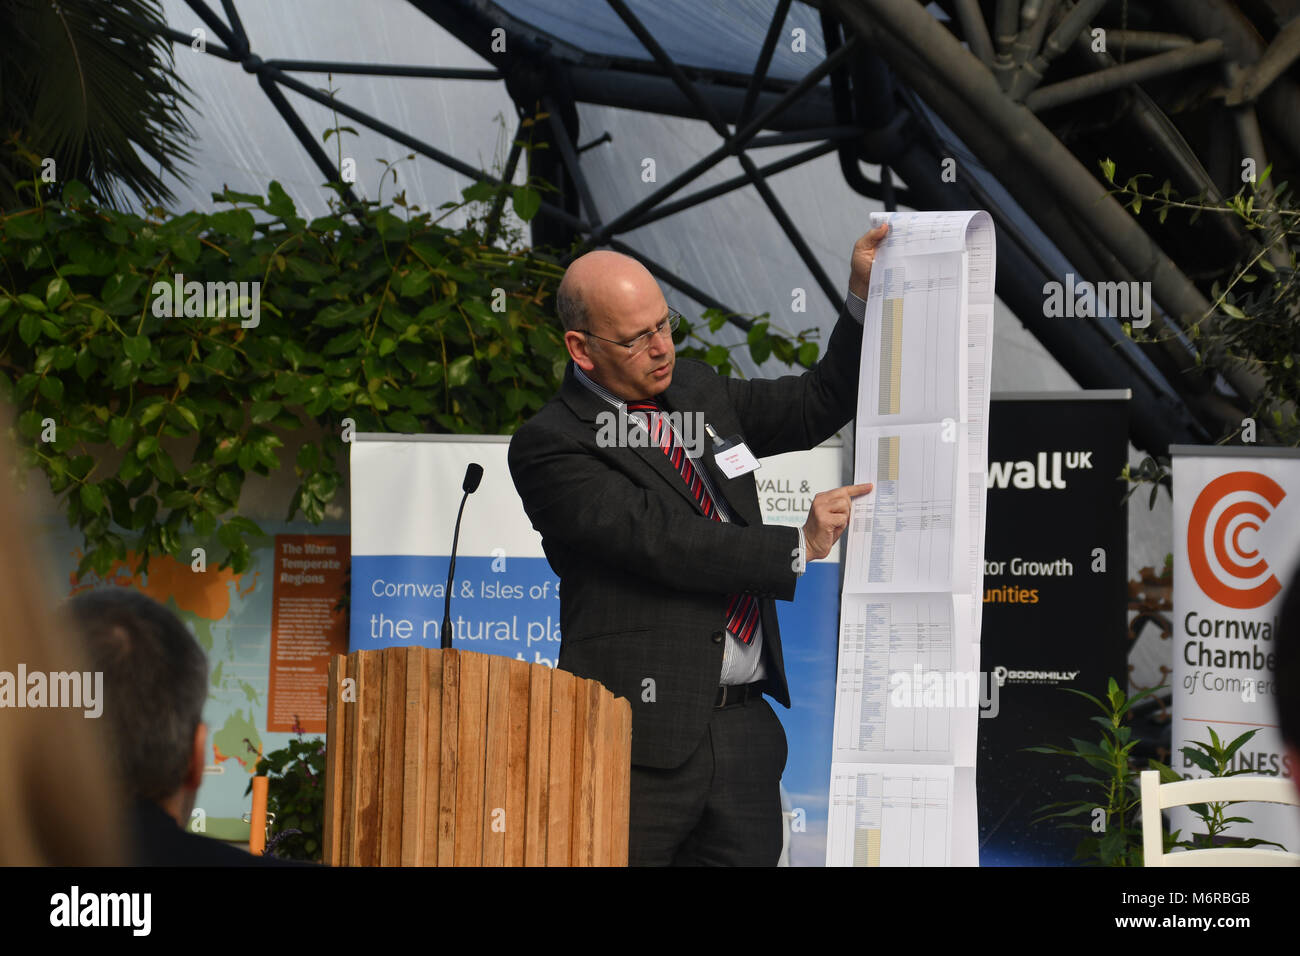 Eden Project, Cornwall UK. 6th March 2018. Ian Jones, the CEO of Goonhilly Earth Station, was one of the speakers Stock Photo